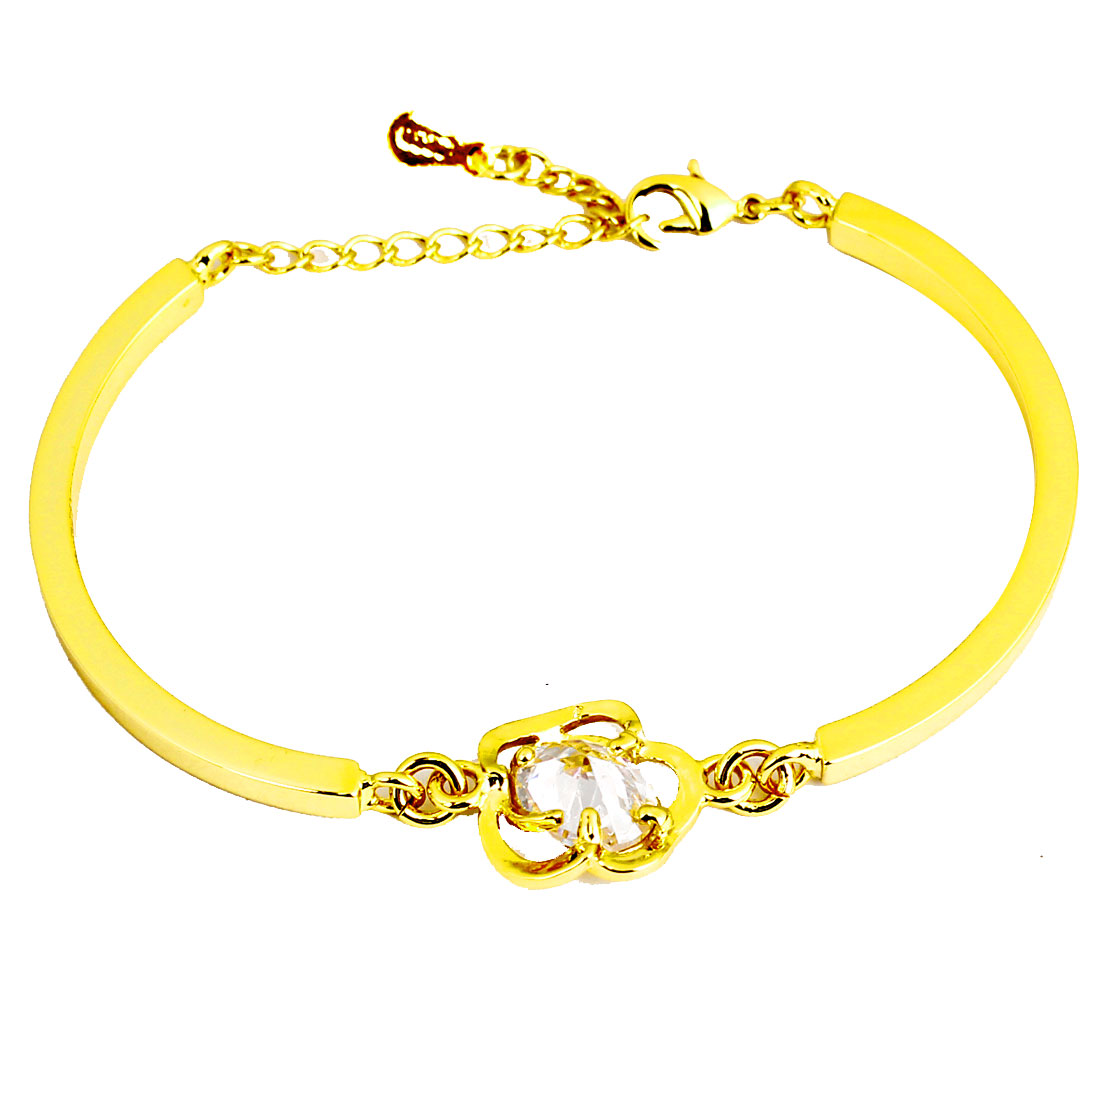 Gold Tone Metal Camellia Decor Bracelet Bangle for Women Ladies